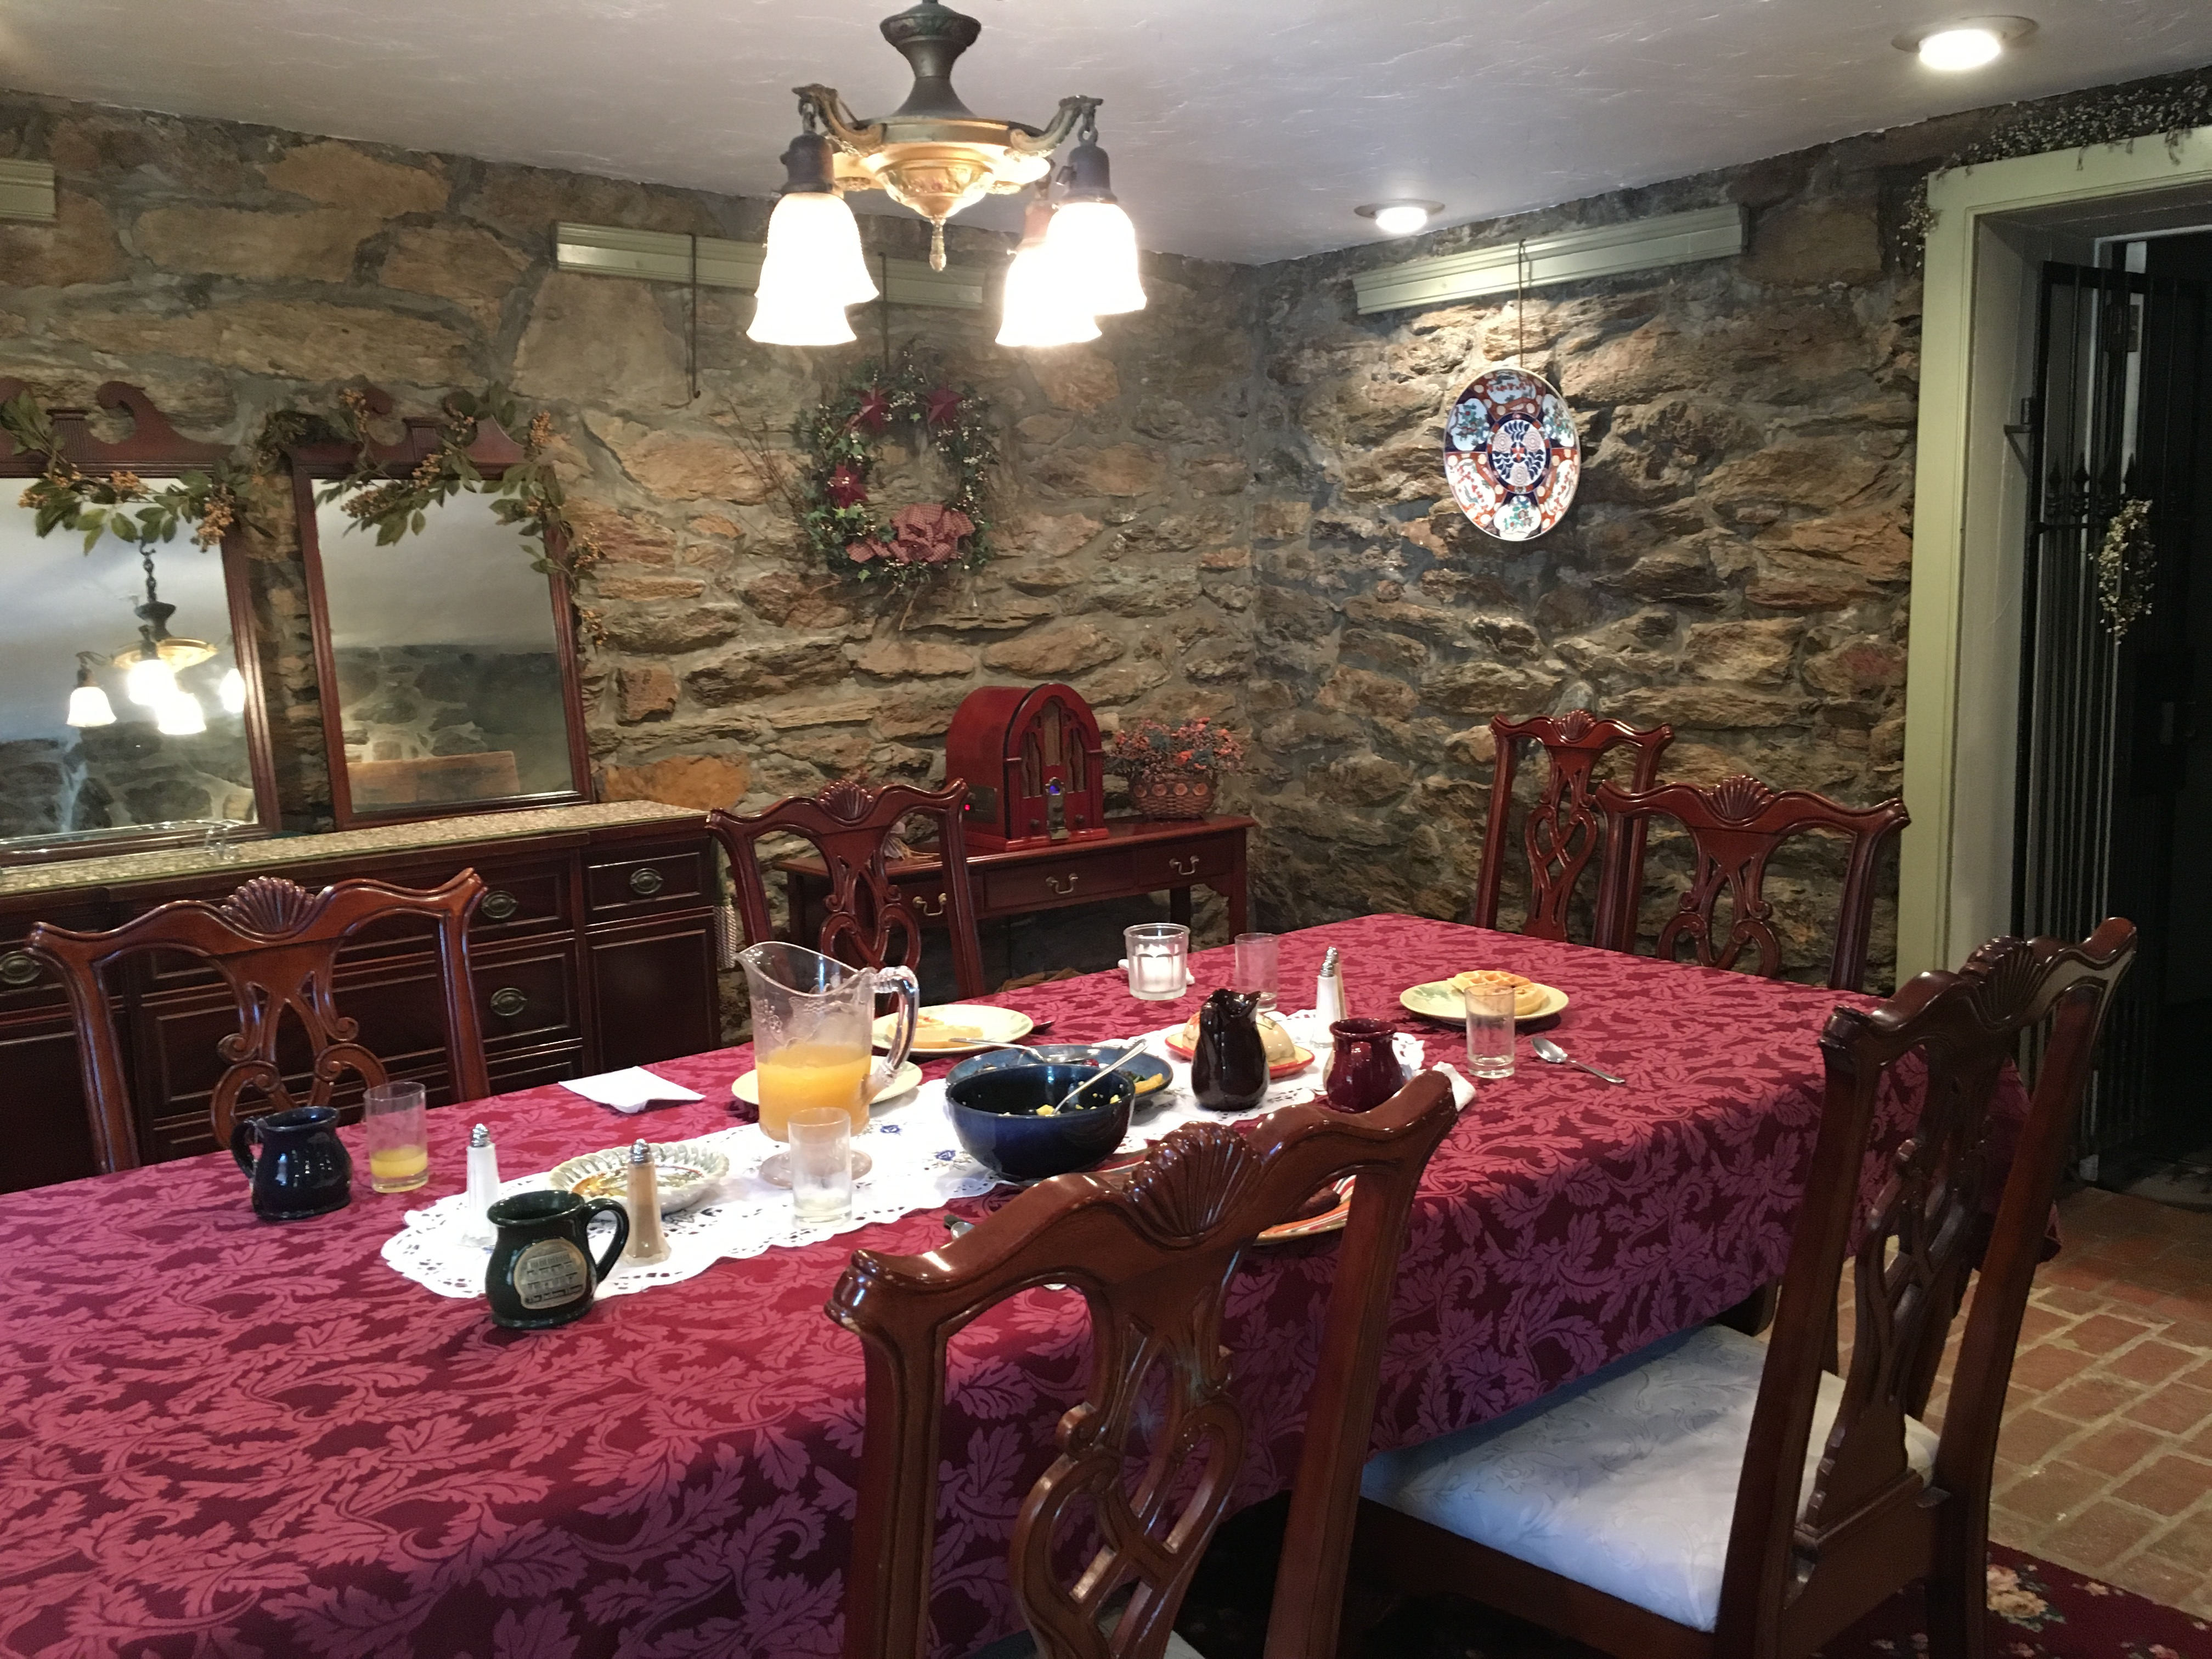 Day 2 Heritage Rail Trail Round Trip From Railroad PA To York 38 Miles Jackson House Dining Room